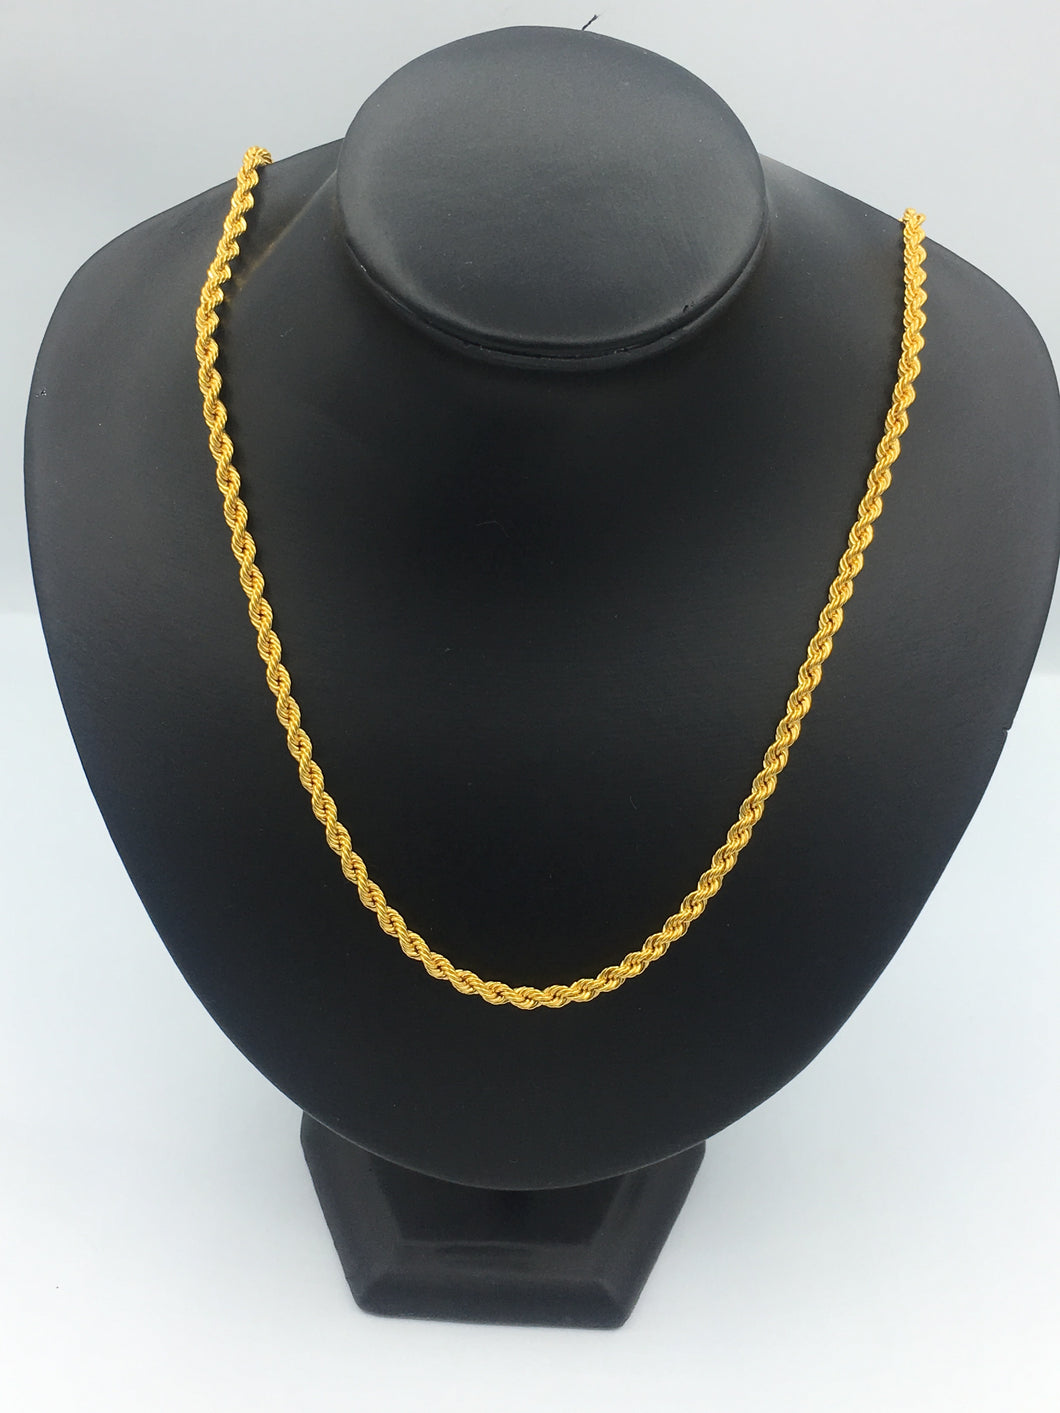 22kt Yellow Gold Rope Chain